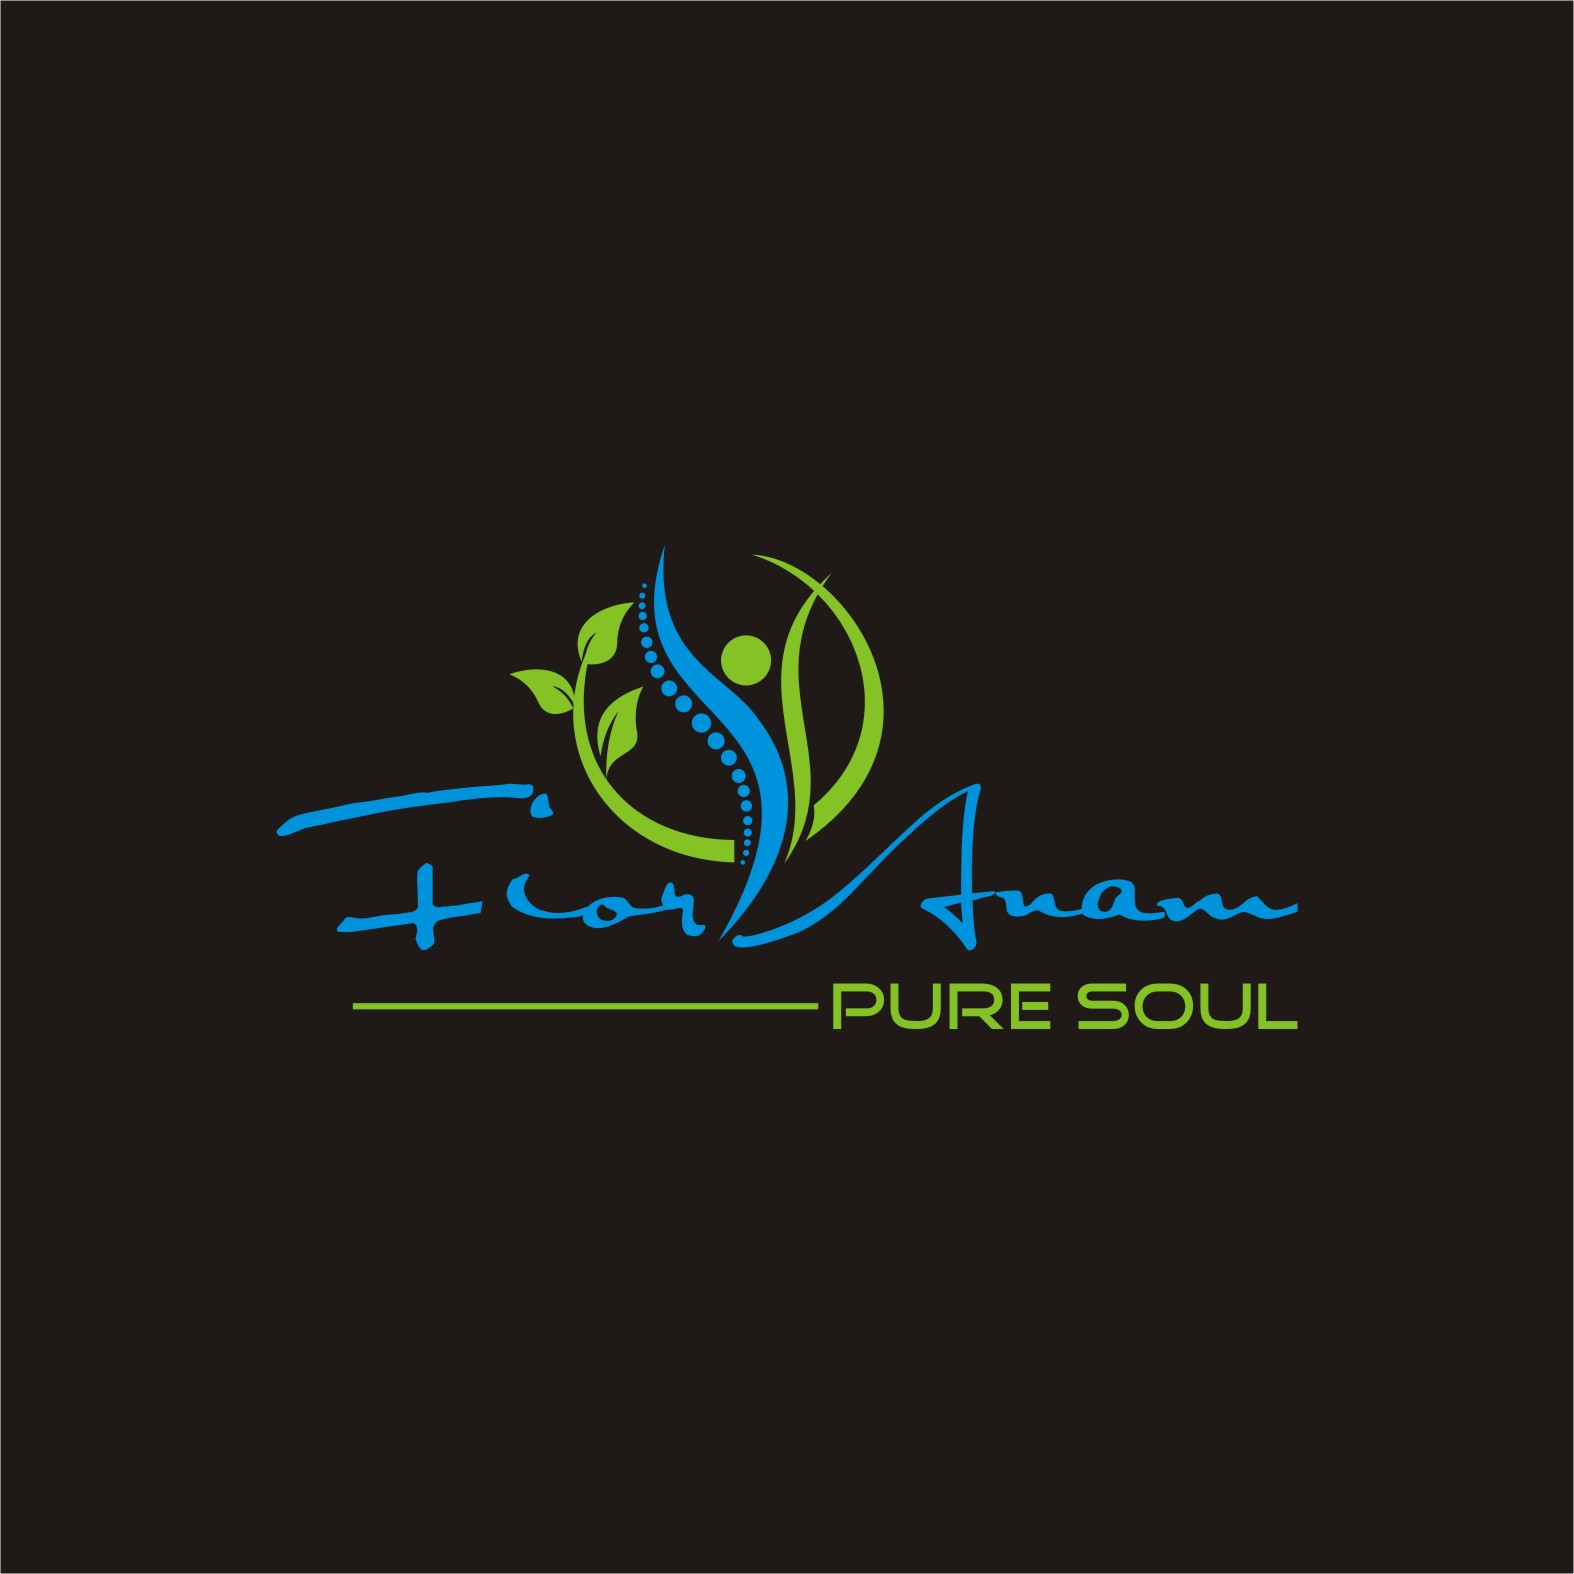 Logo Design by Lynx Graphics - Entry No. 250 in the Logo Design Contest Creative Logo Design for Fior Anam.